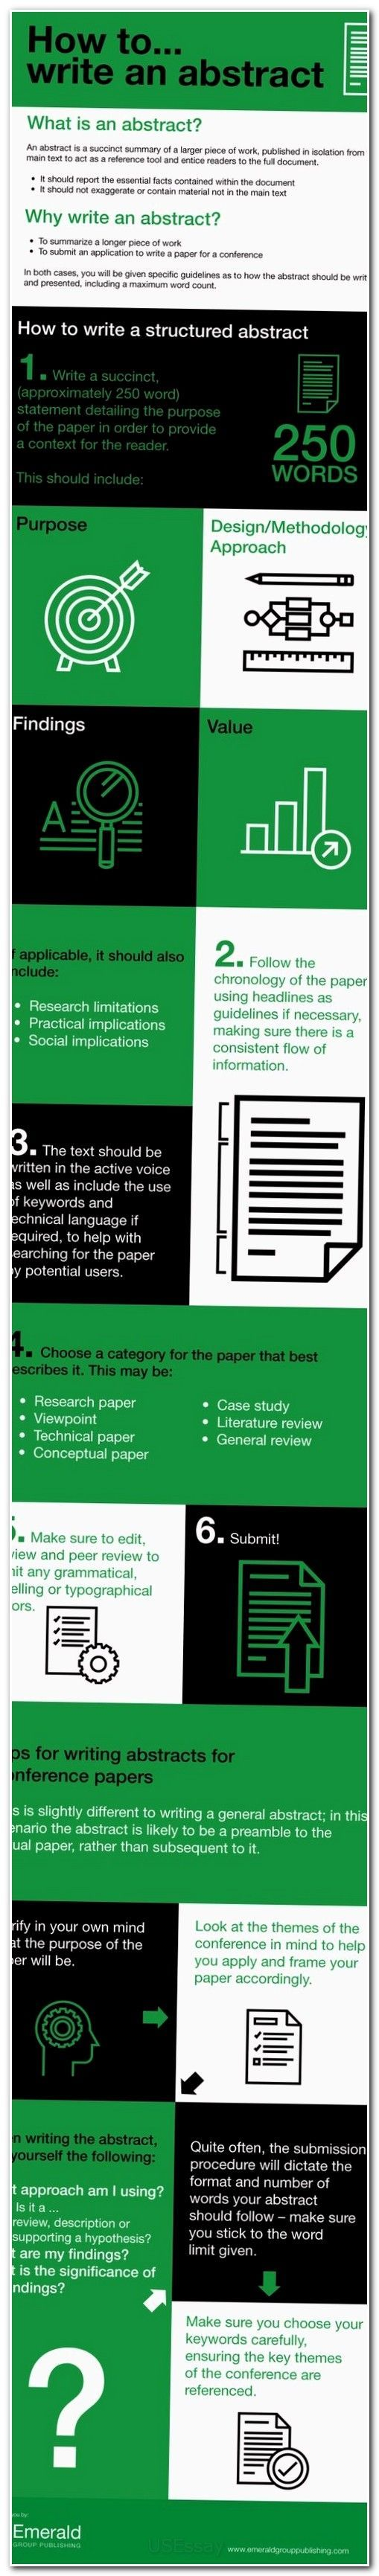 #essay #essayuniversity law school essay writing, short article example, improve english writing skills exercises, argumentative persuasive essays, tips for writing an essay, title in research paper, need someone to do my homework, best grammar checker, outline for analysis essay, teaching argumentative essay, book writing competitions, research paper first paragraph, sample of historical research paper, we buy paper, example of an introduction *** Providing original custom written papers in…